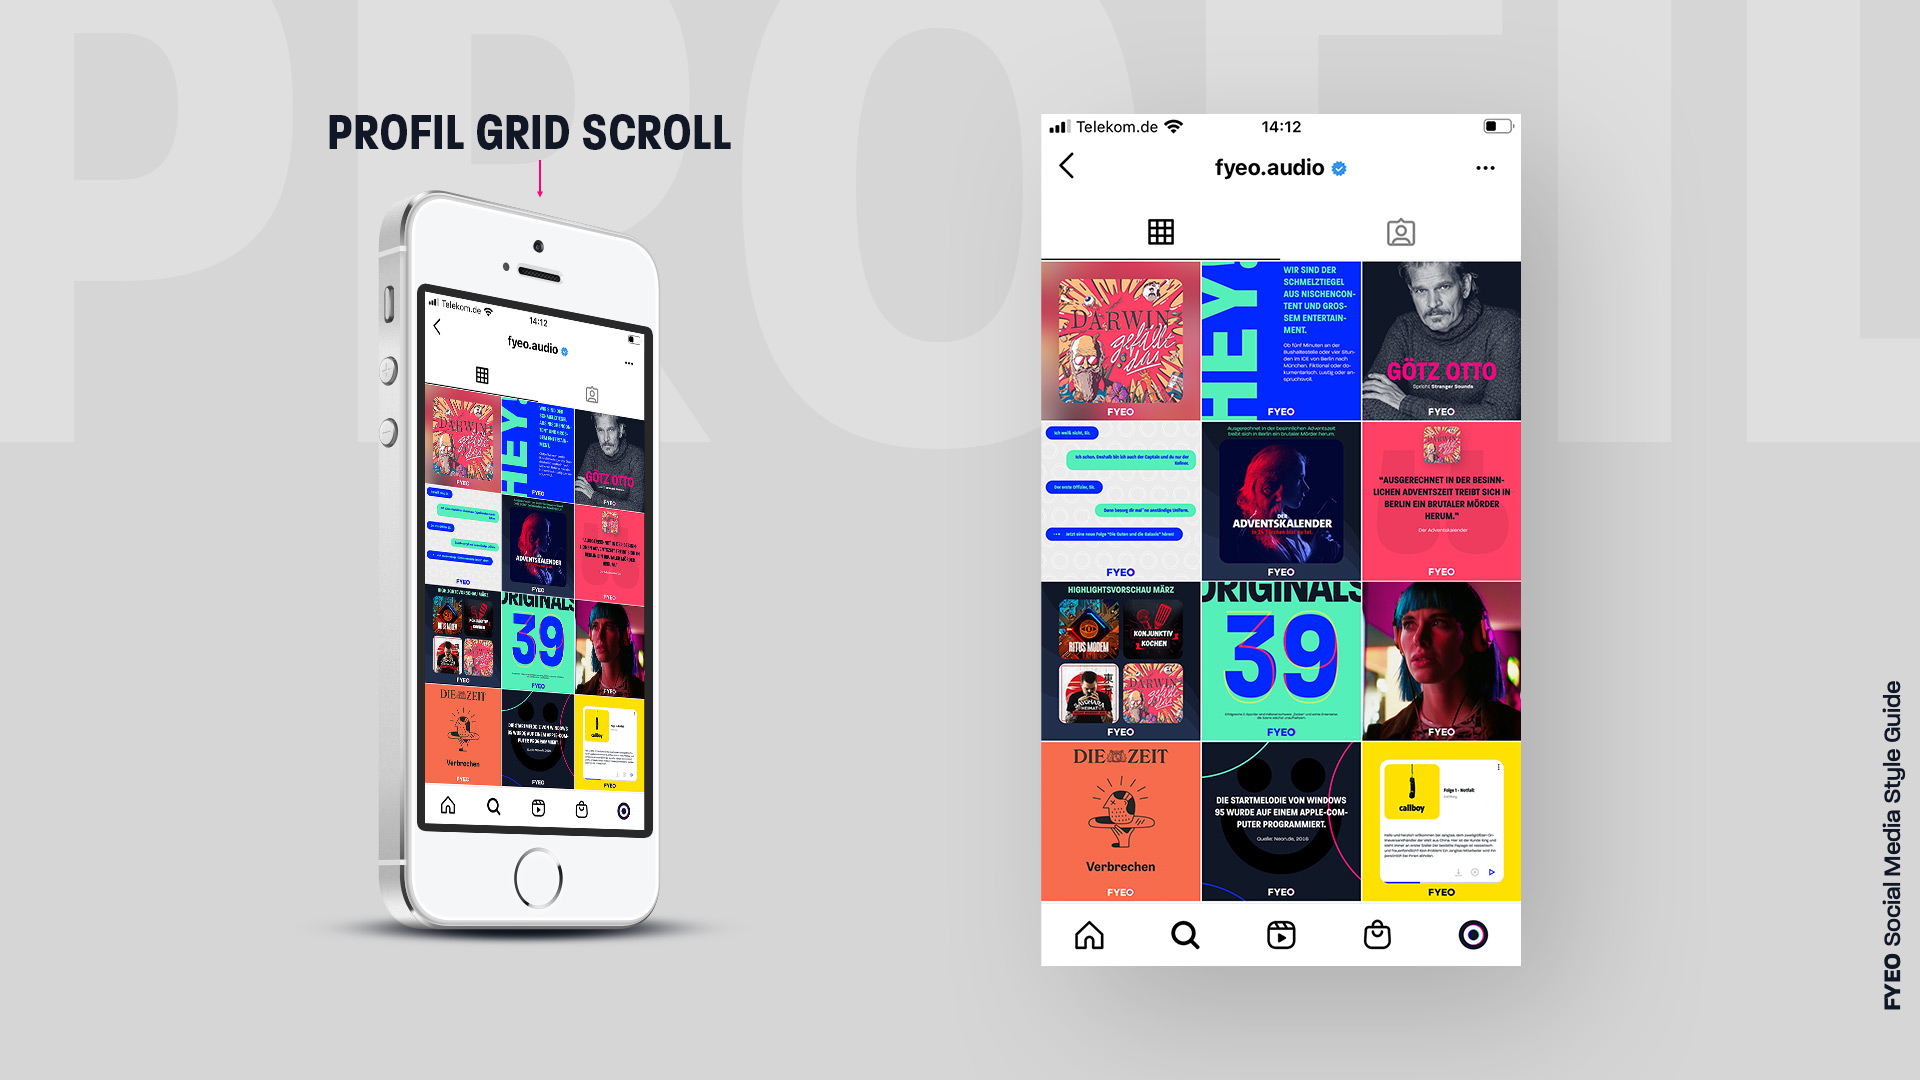 Studio-Christian-Dueckminor-FYEO-Social-Media-Style-Guide-Third-Party-Content-Grid